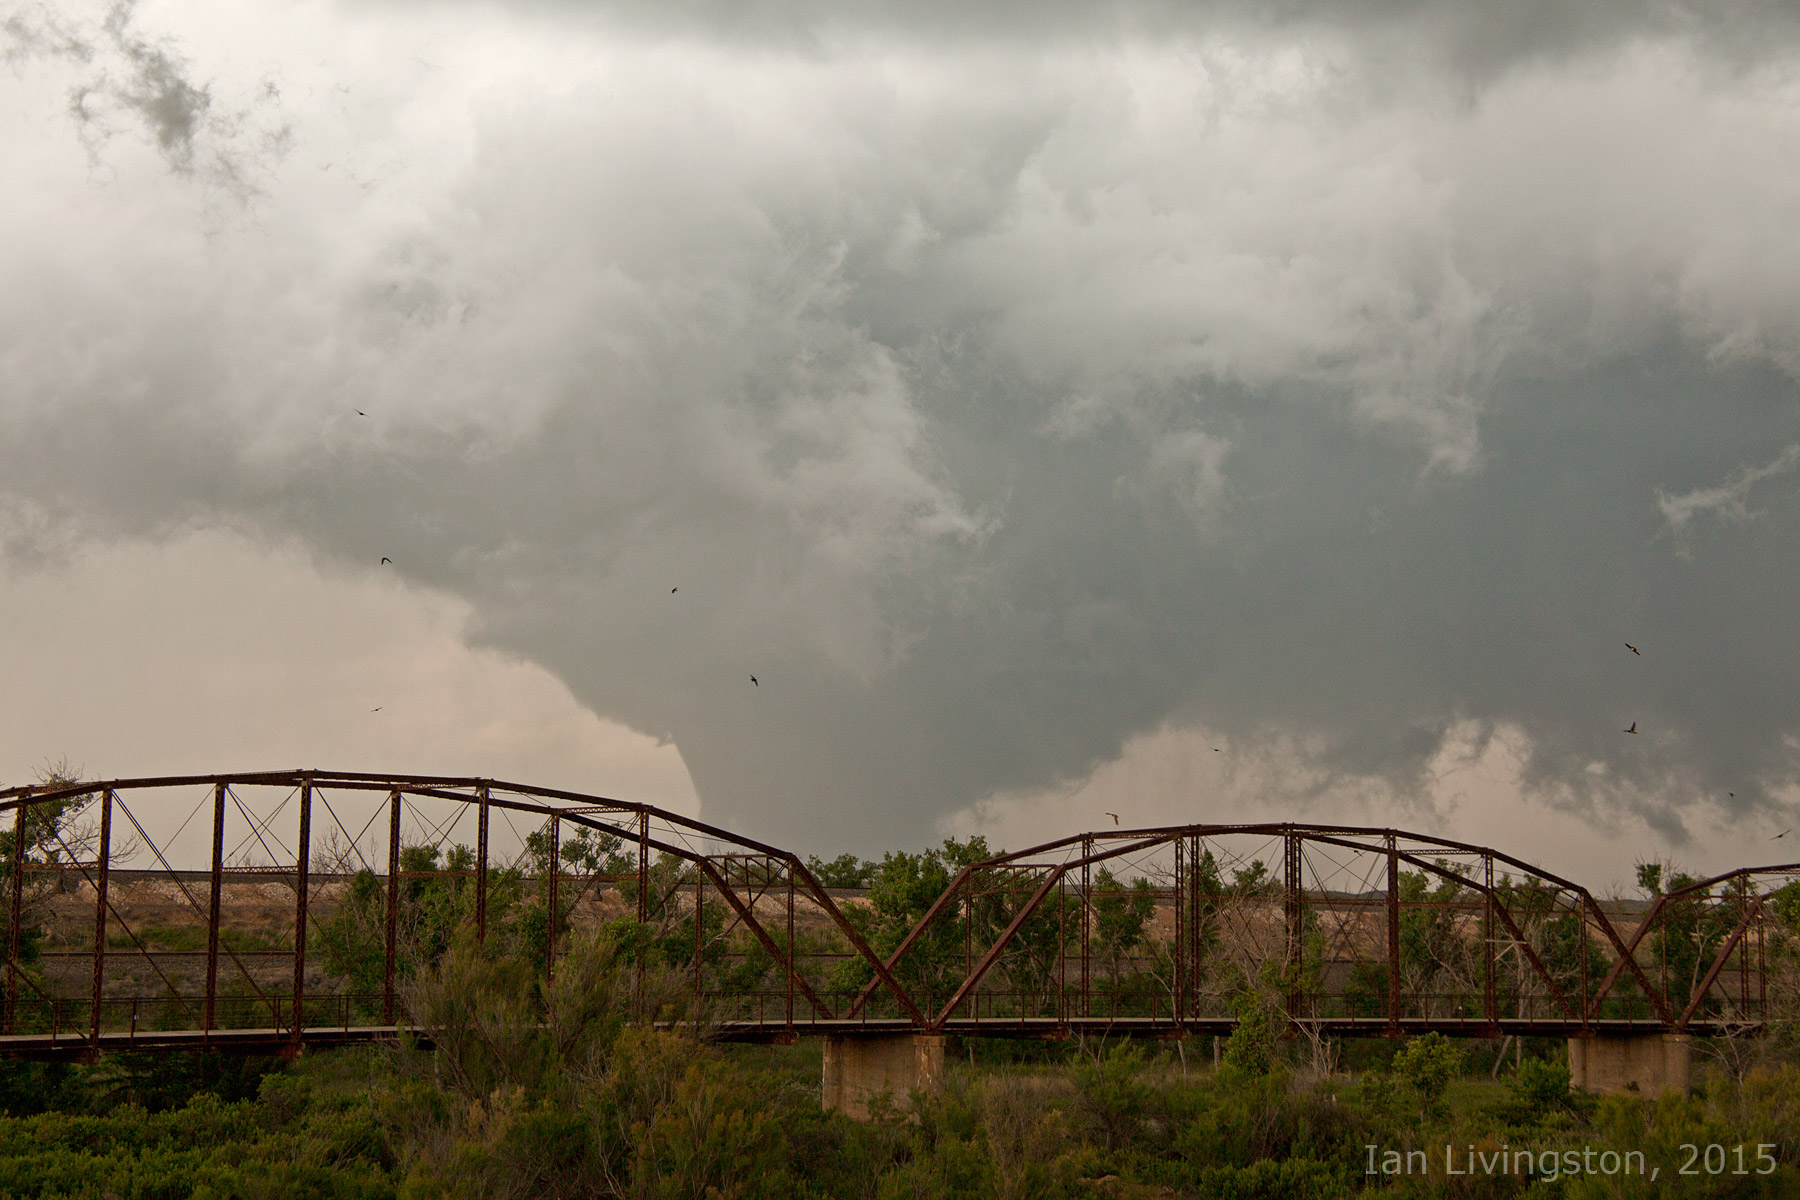 Weather For Livingston Texas : Chasecation 2015 Day 6 - Multiple tornadoes near Canadian ...